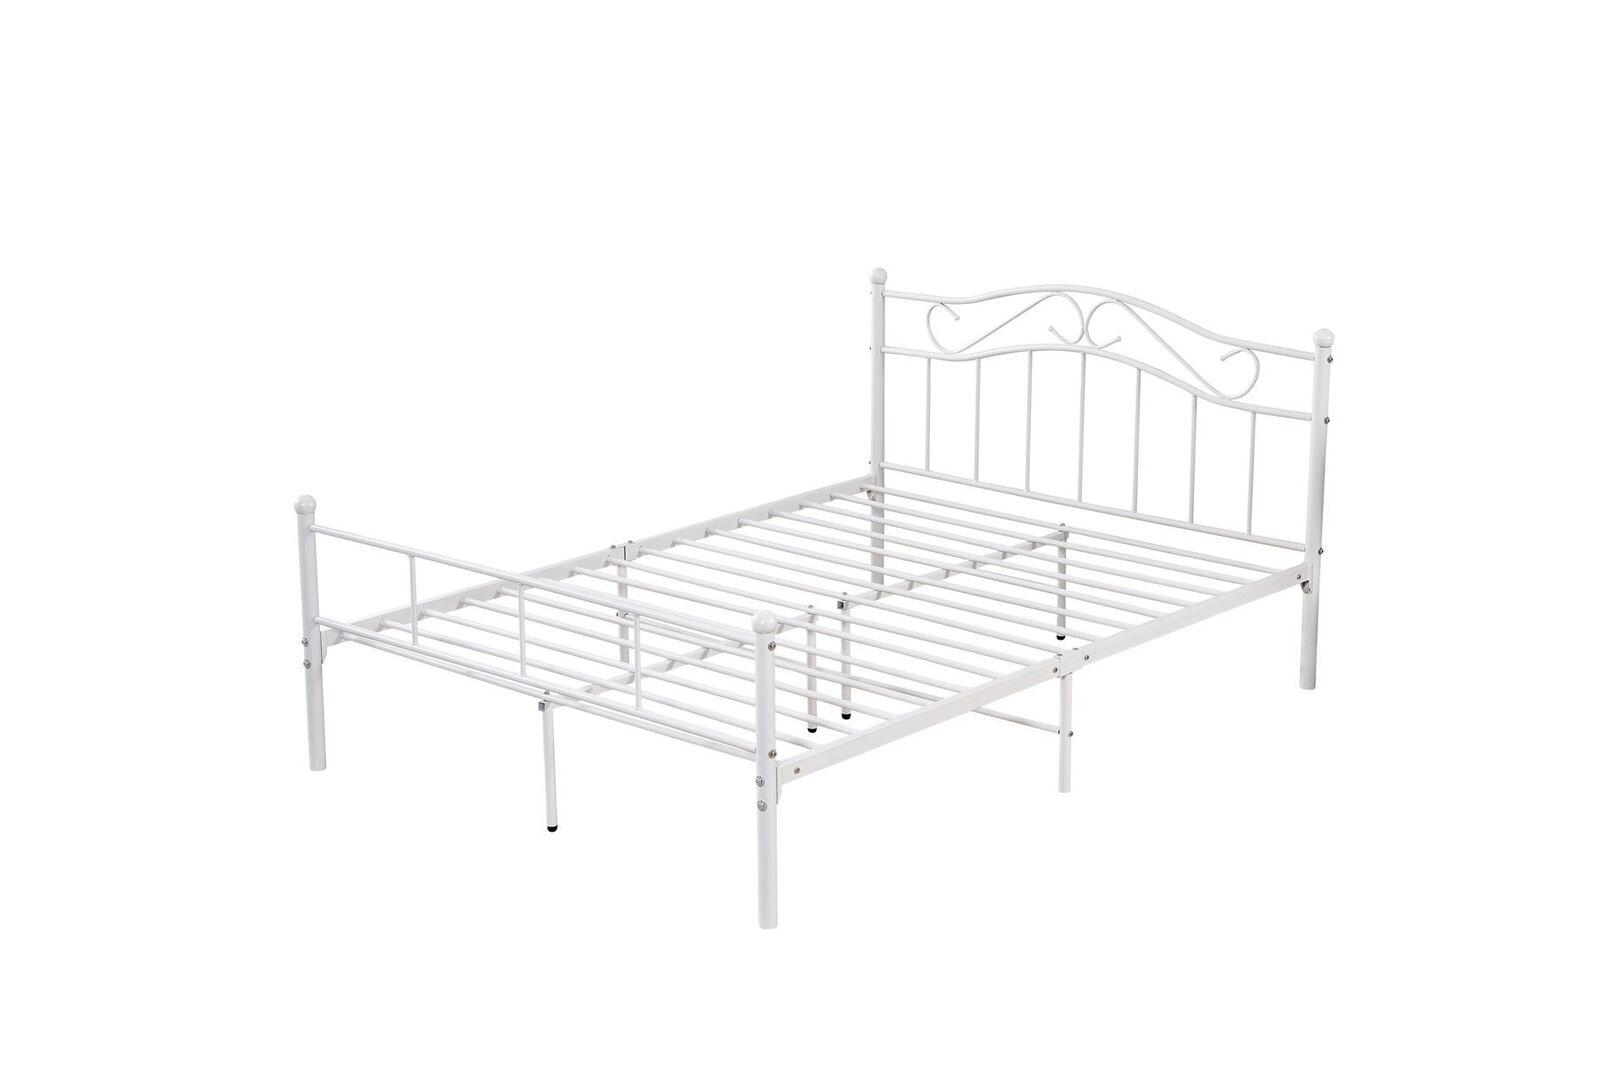 Solid Metal Bed Frame Single Double King Kitchenscraft